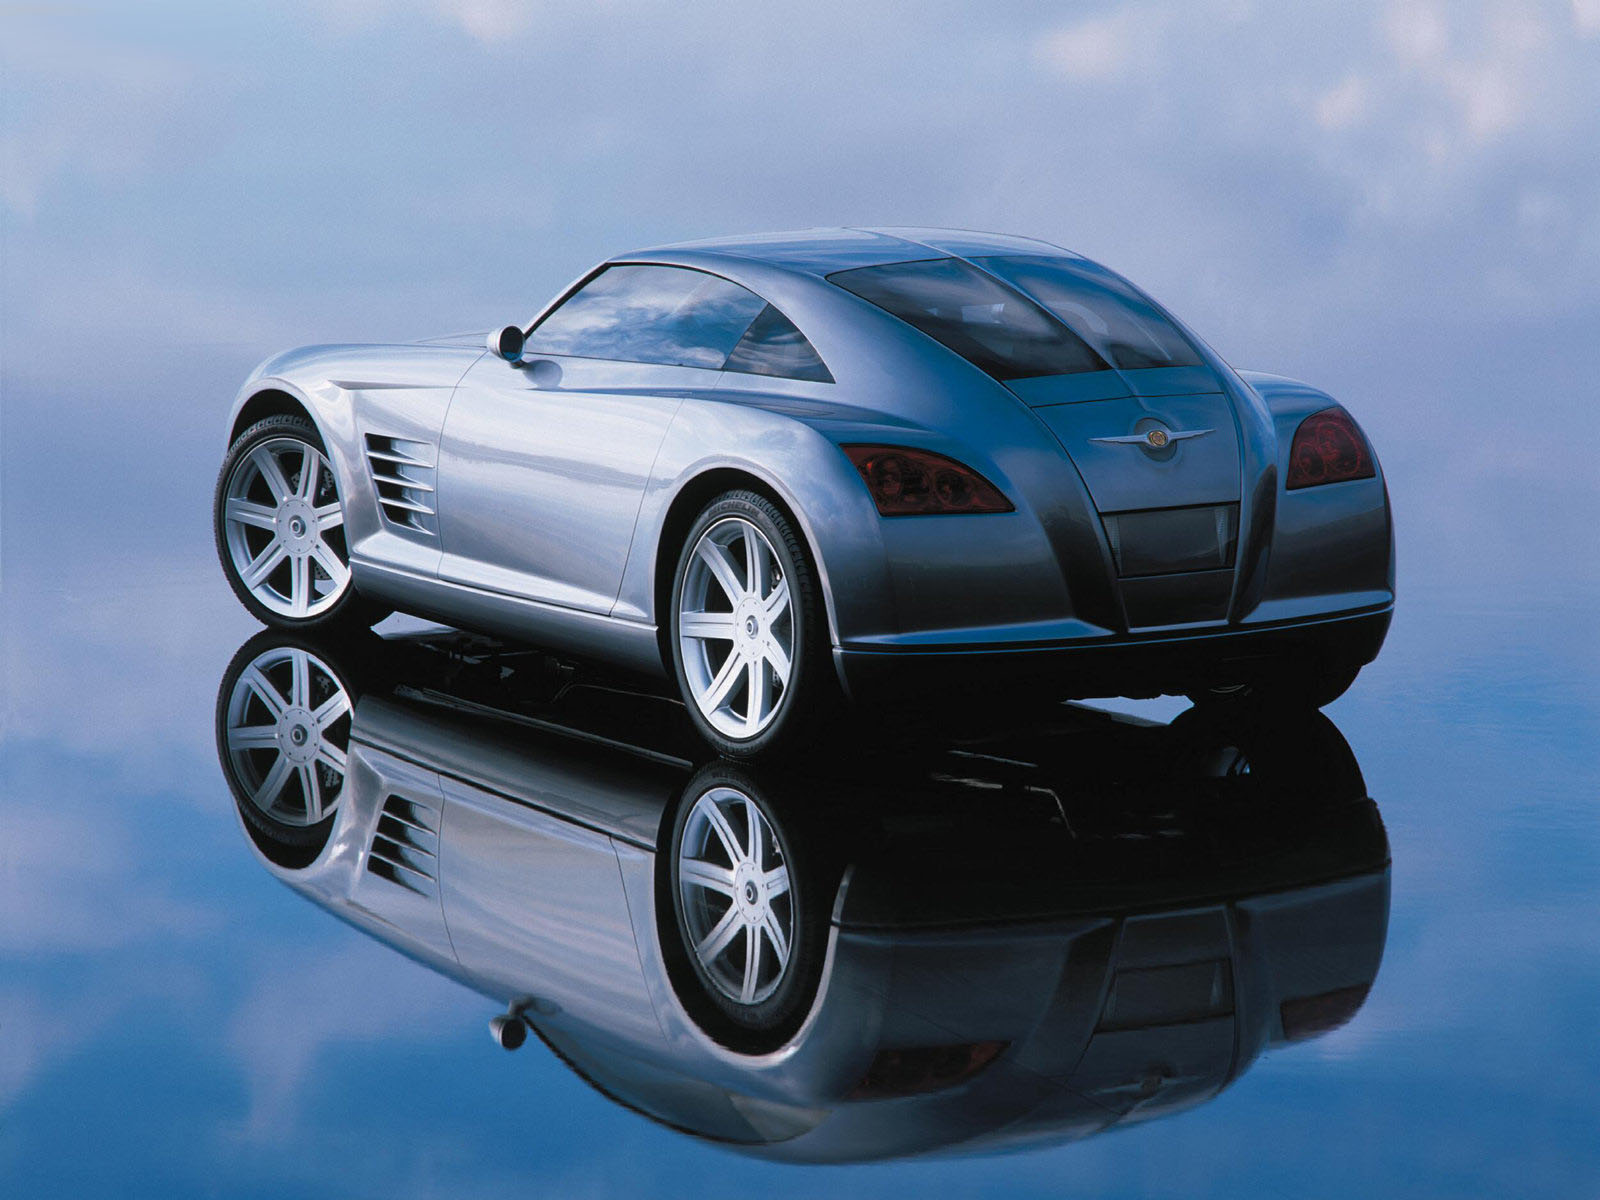 Cool Chrysler Crossfire Hot Desktop